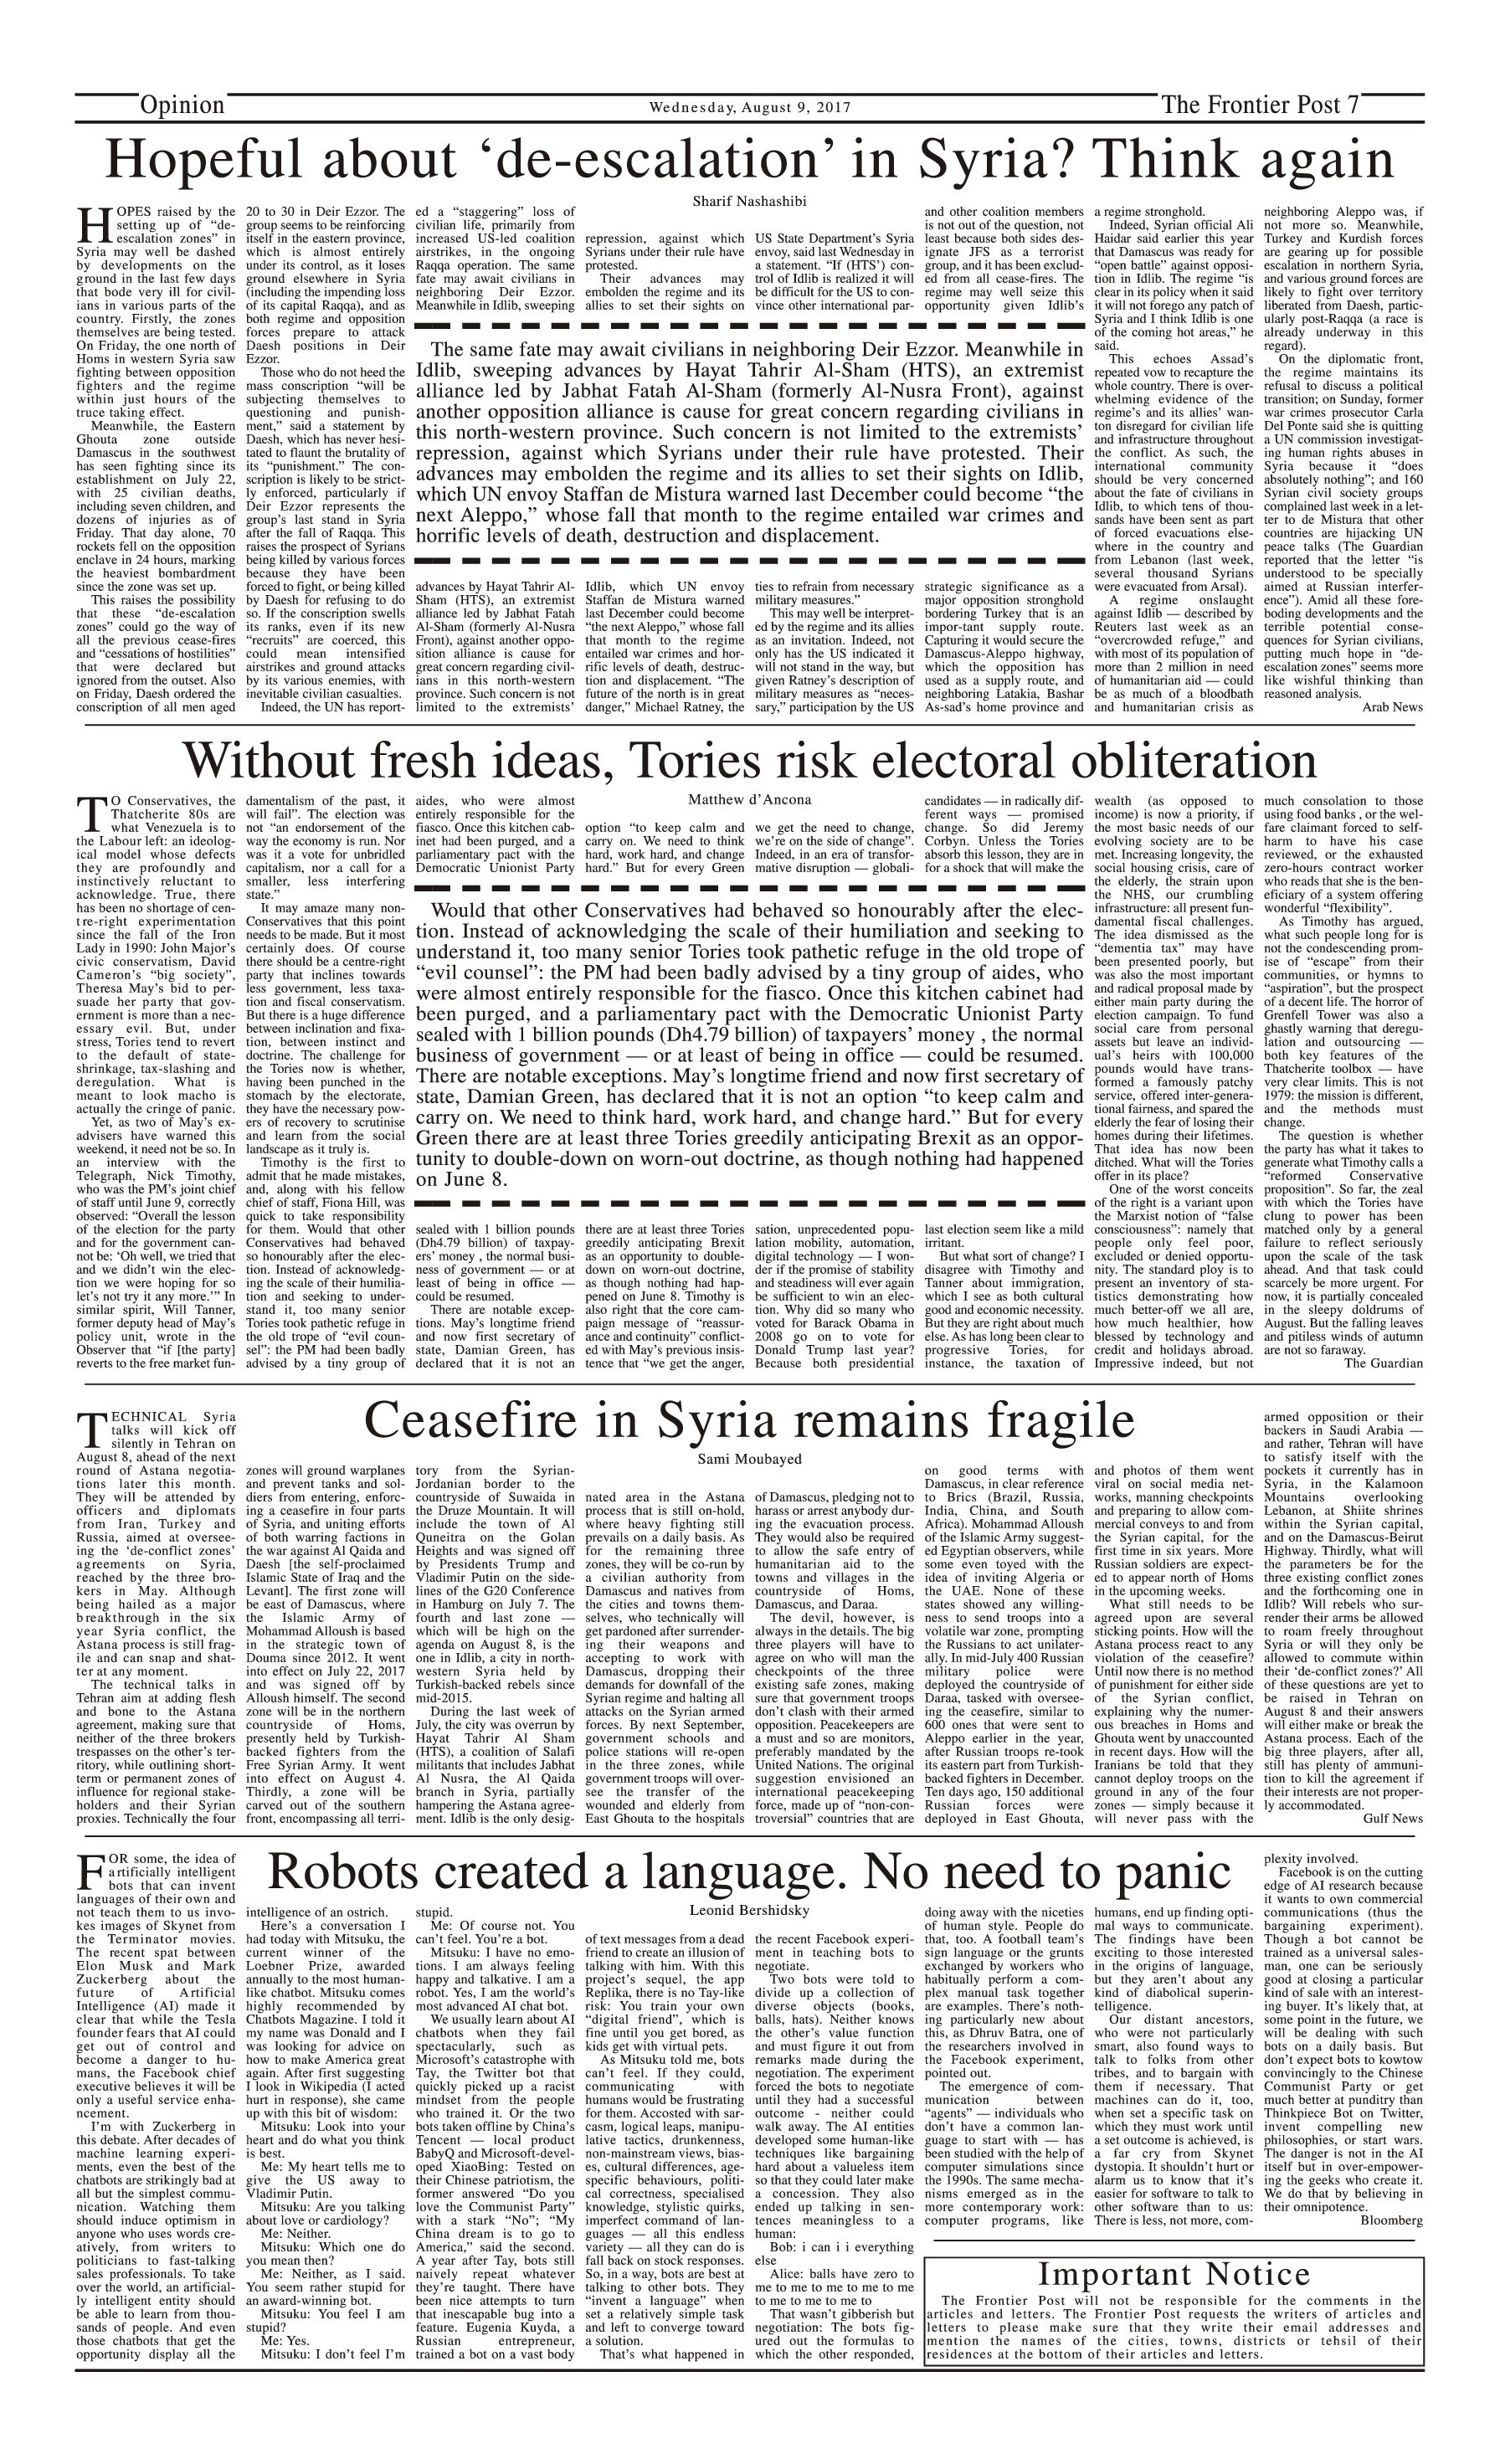 Opinion Page 09